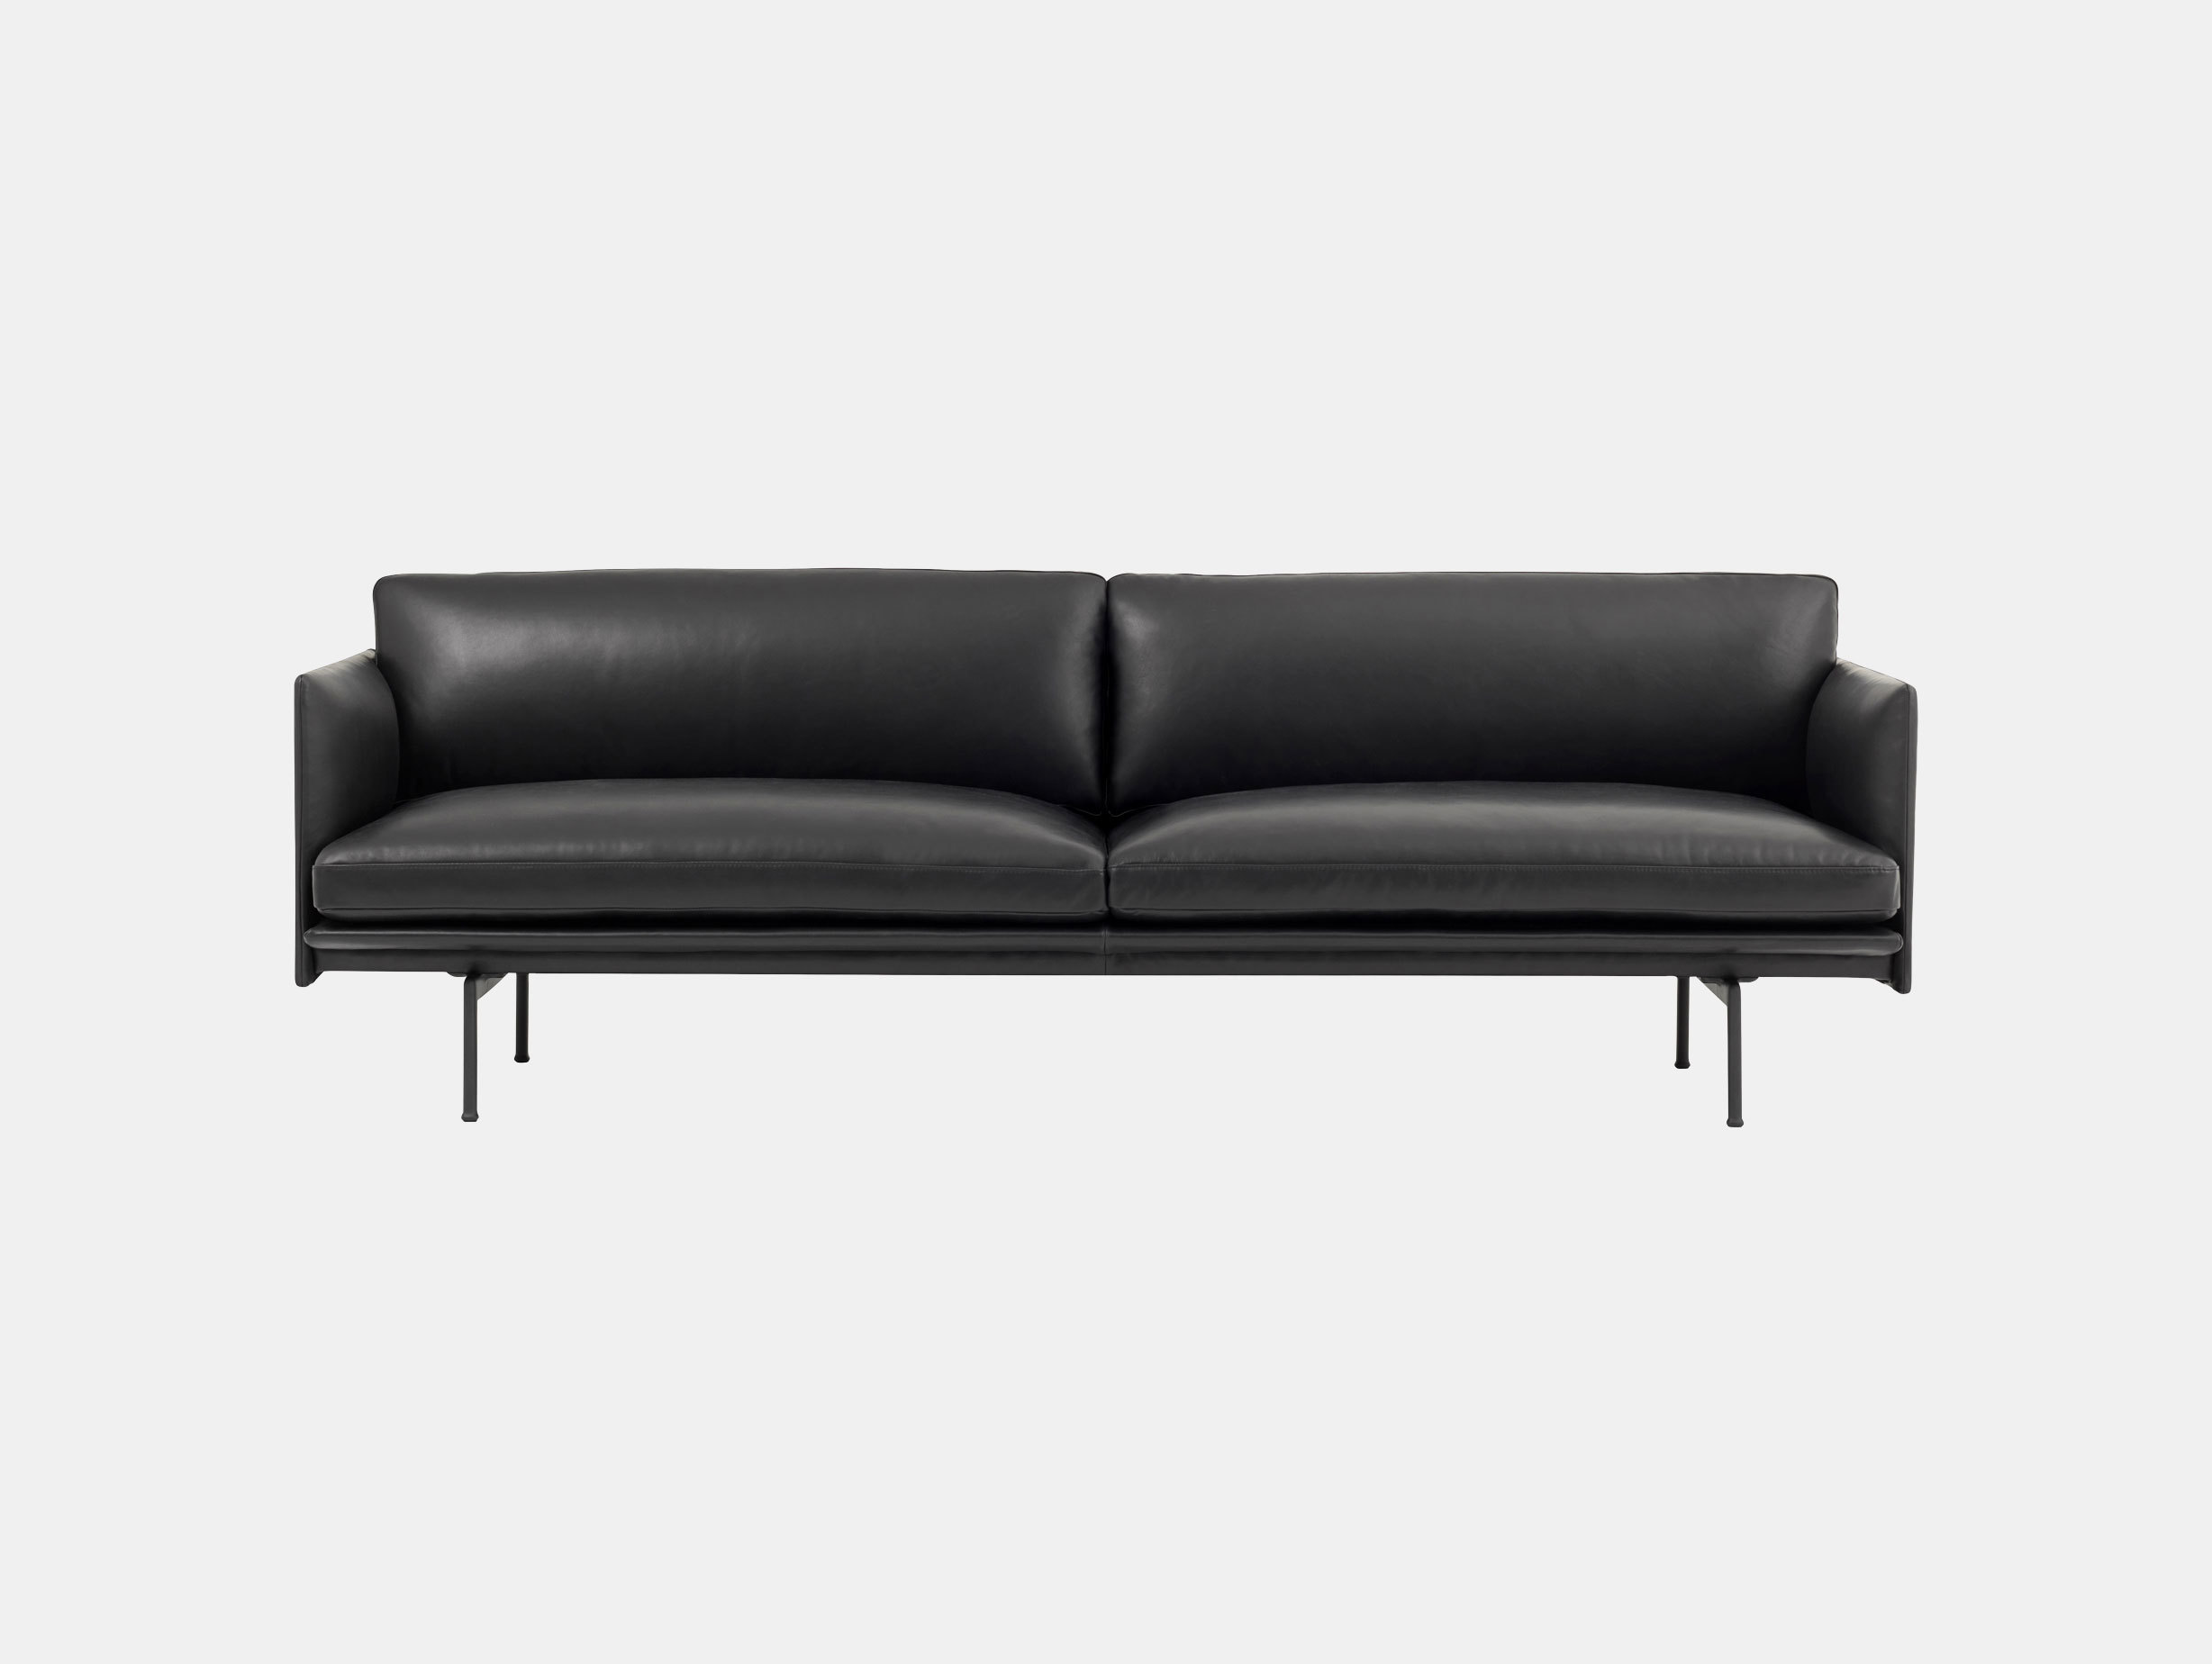 Outline Sofa image 9